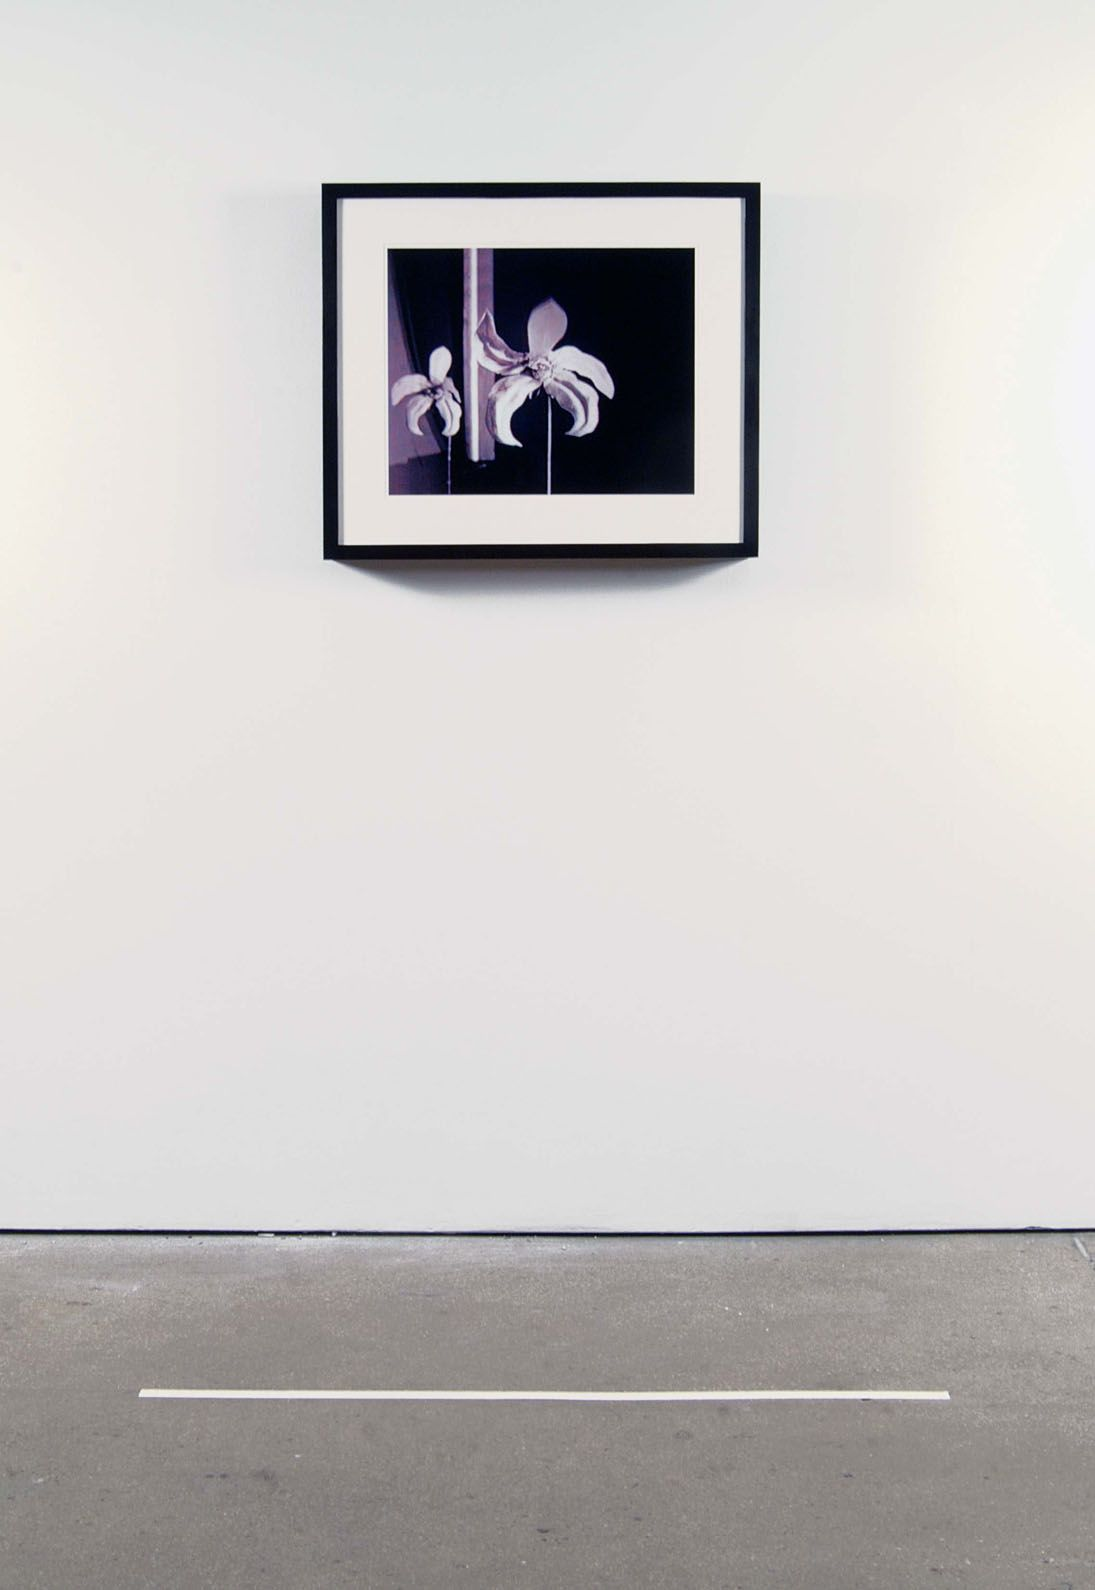 installation view of photograph with purple flowers by john waters